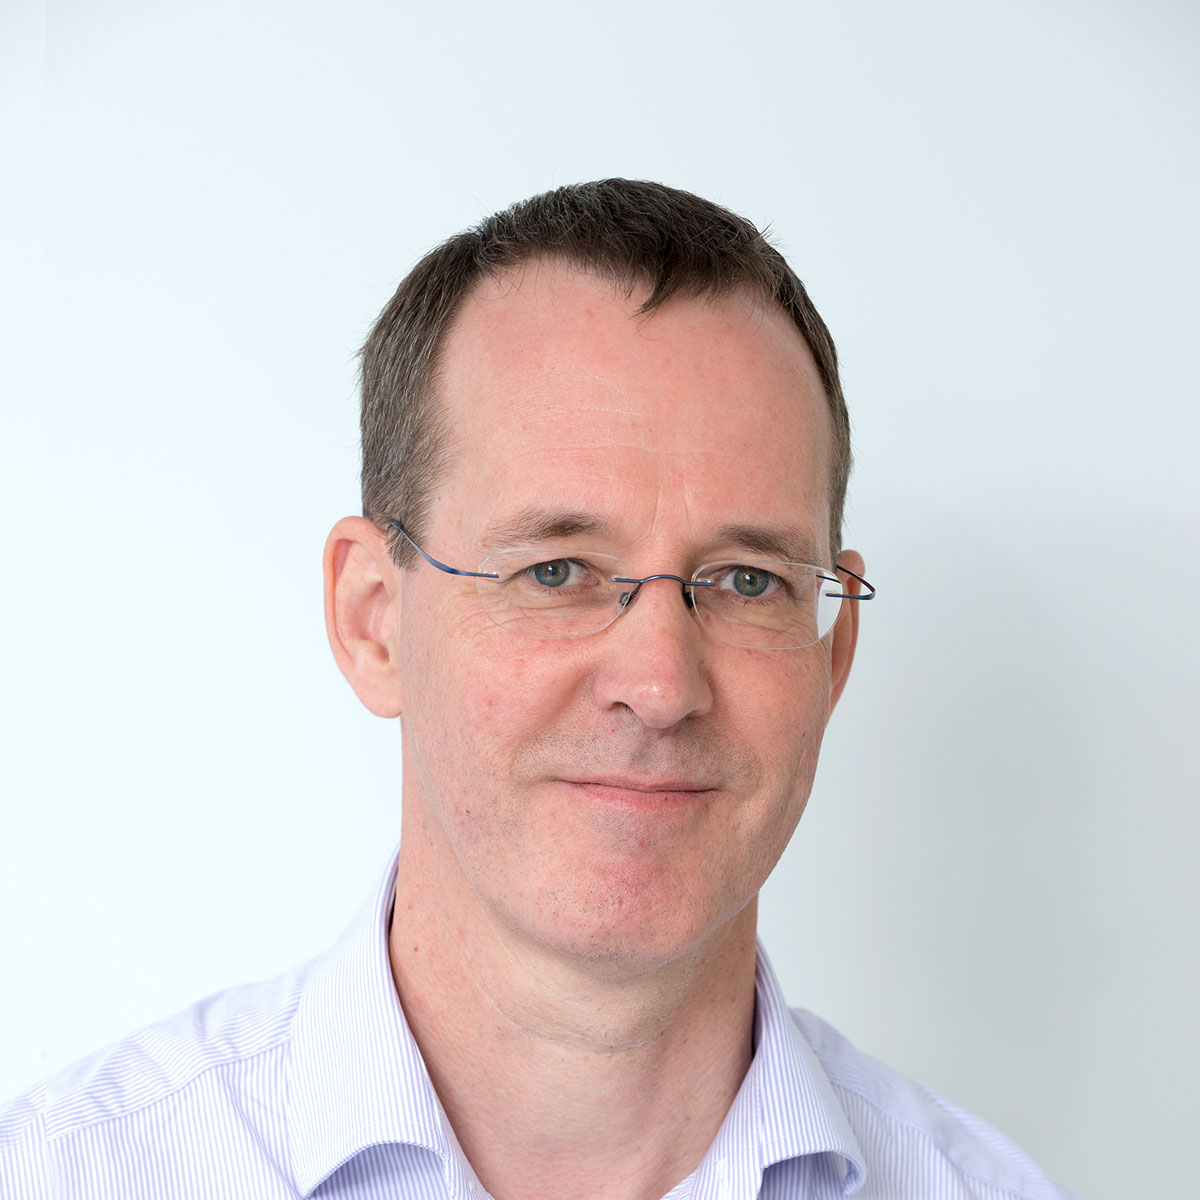 David Parker - Associate ConsultantTalk to David about: Remanufacturing, sustainability metrics, technical evaluation